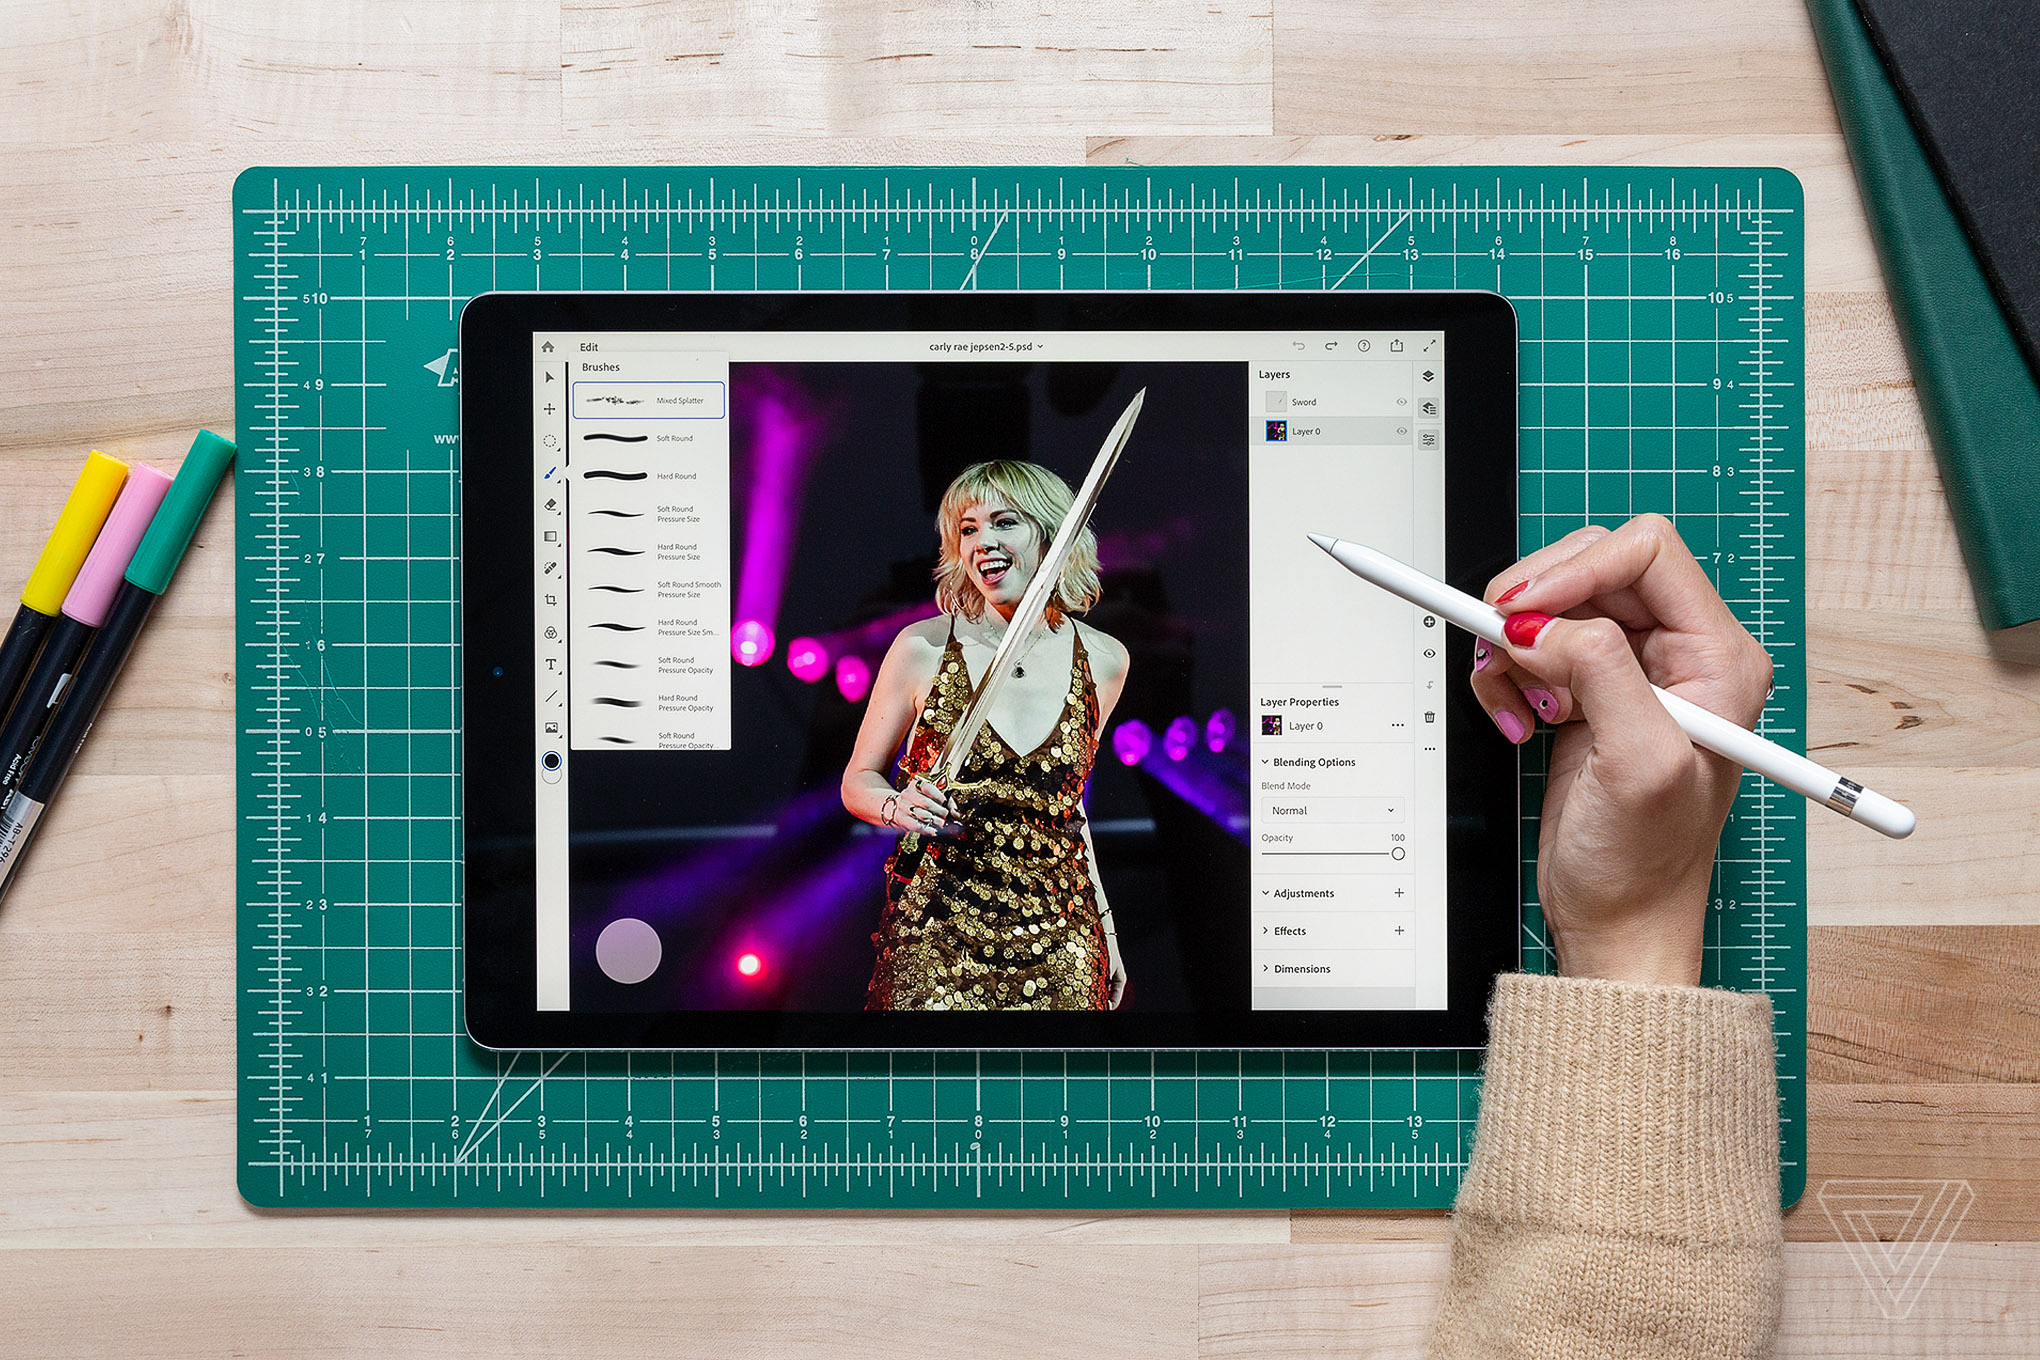 Adobe's Photoshop for the iPad is taking beta test applications